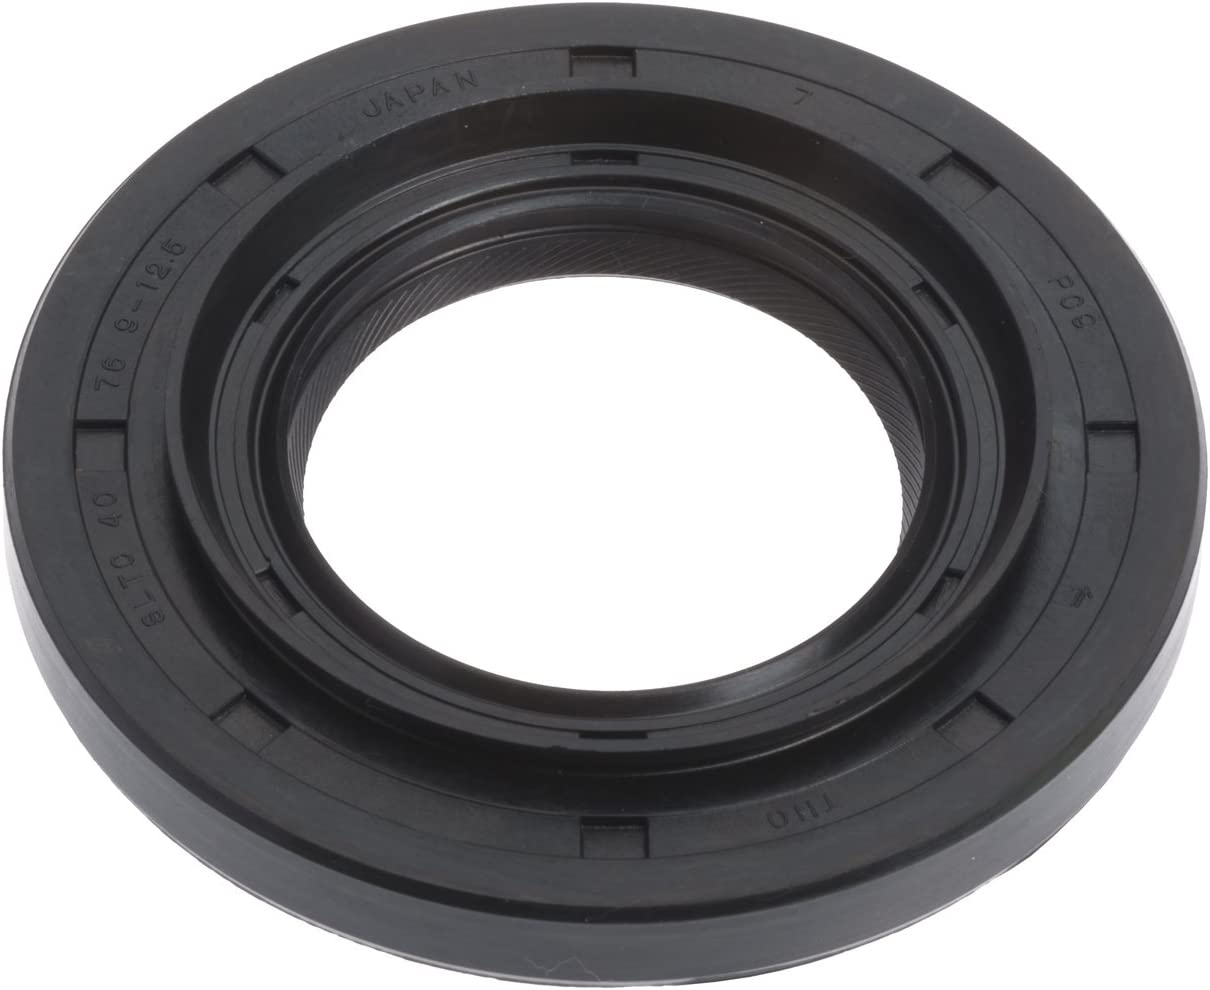 National 1146 Auto Trans Max Large discharge sale 83% OFF Shaft Seal Output